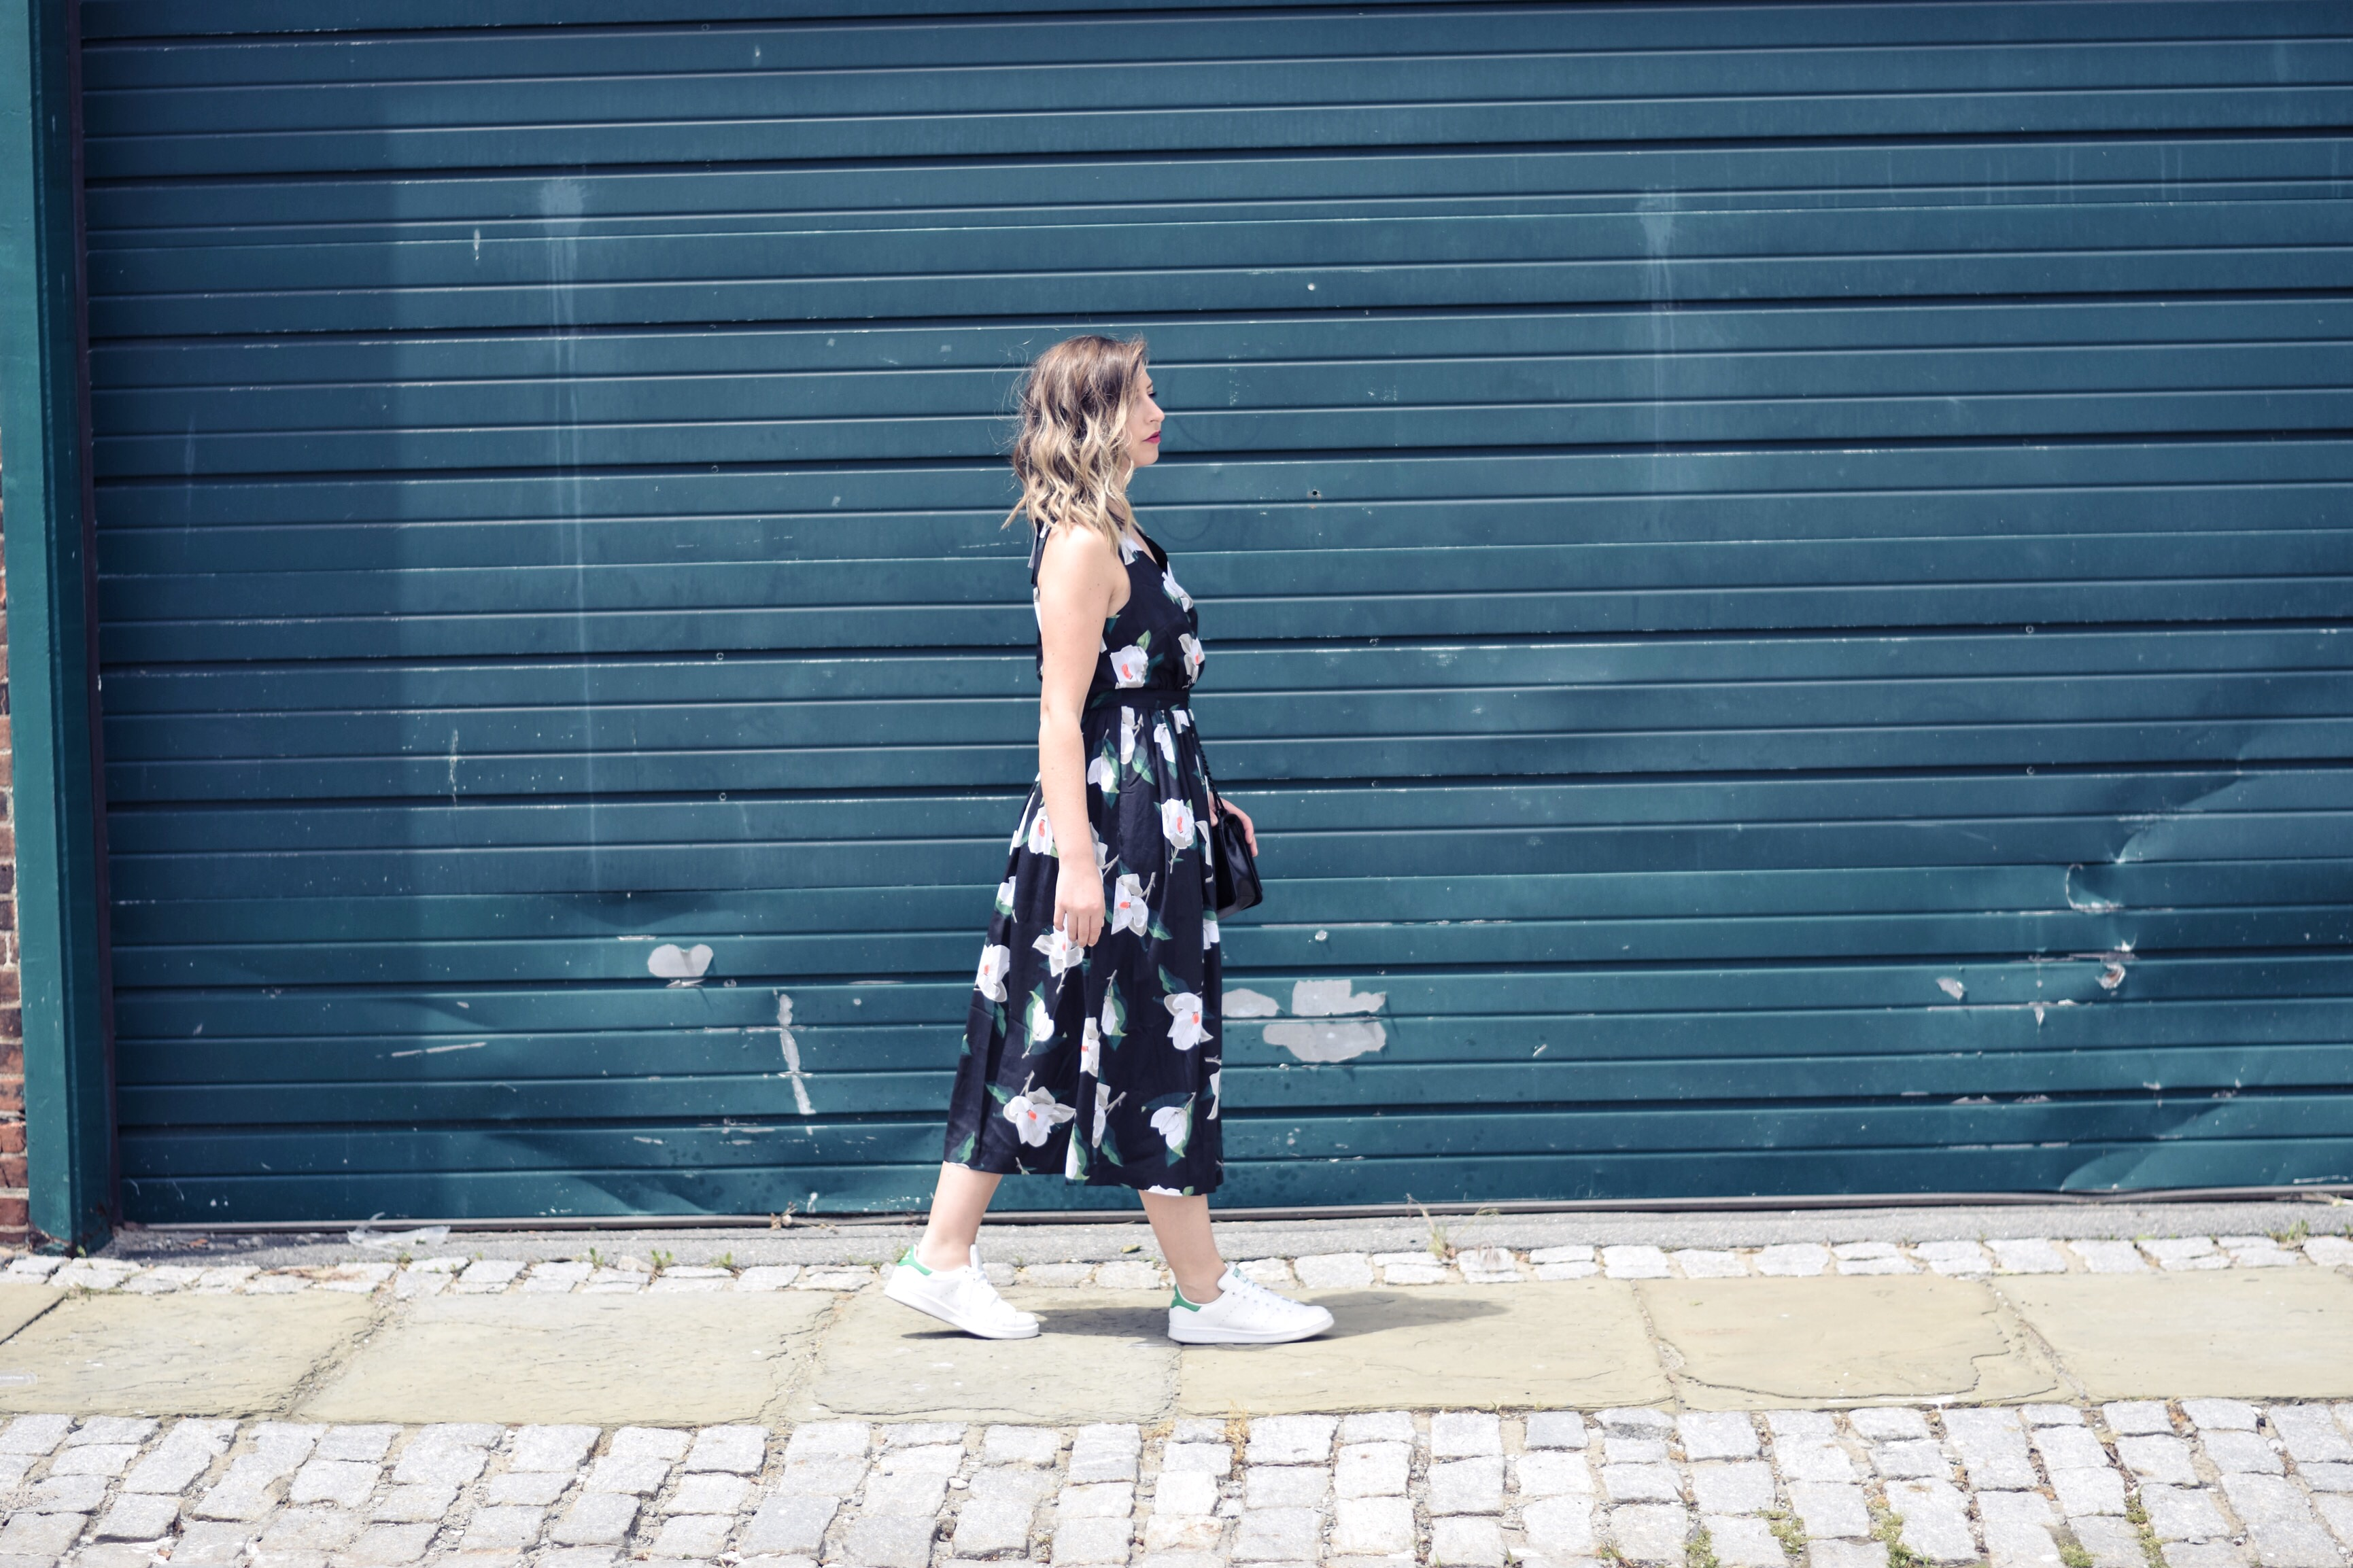 WEAR STAN SMITH SNEAKERS WITH A DRESS